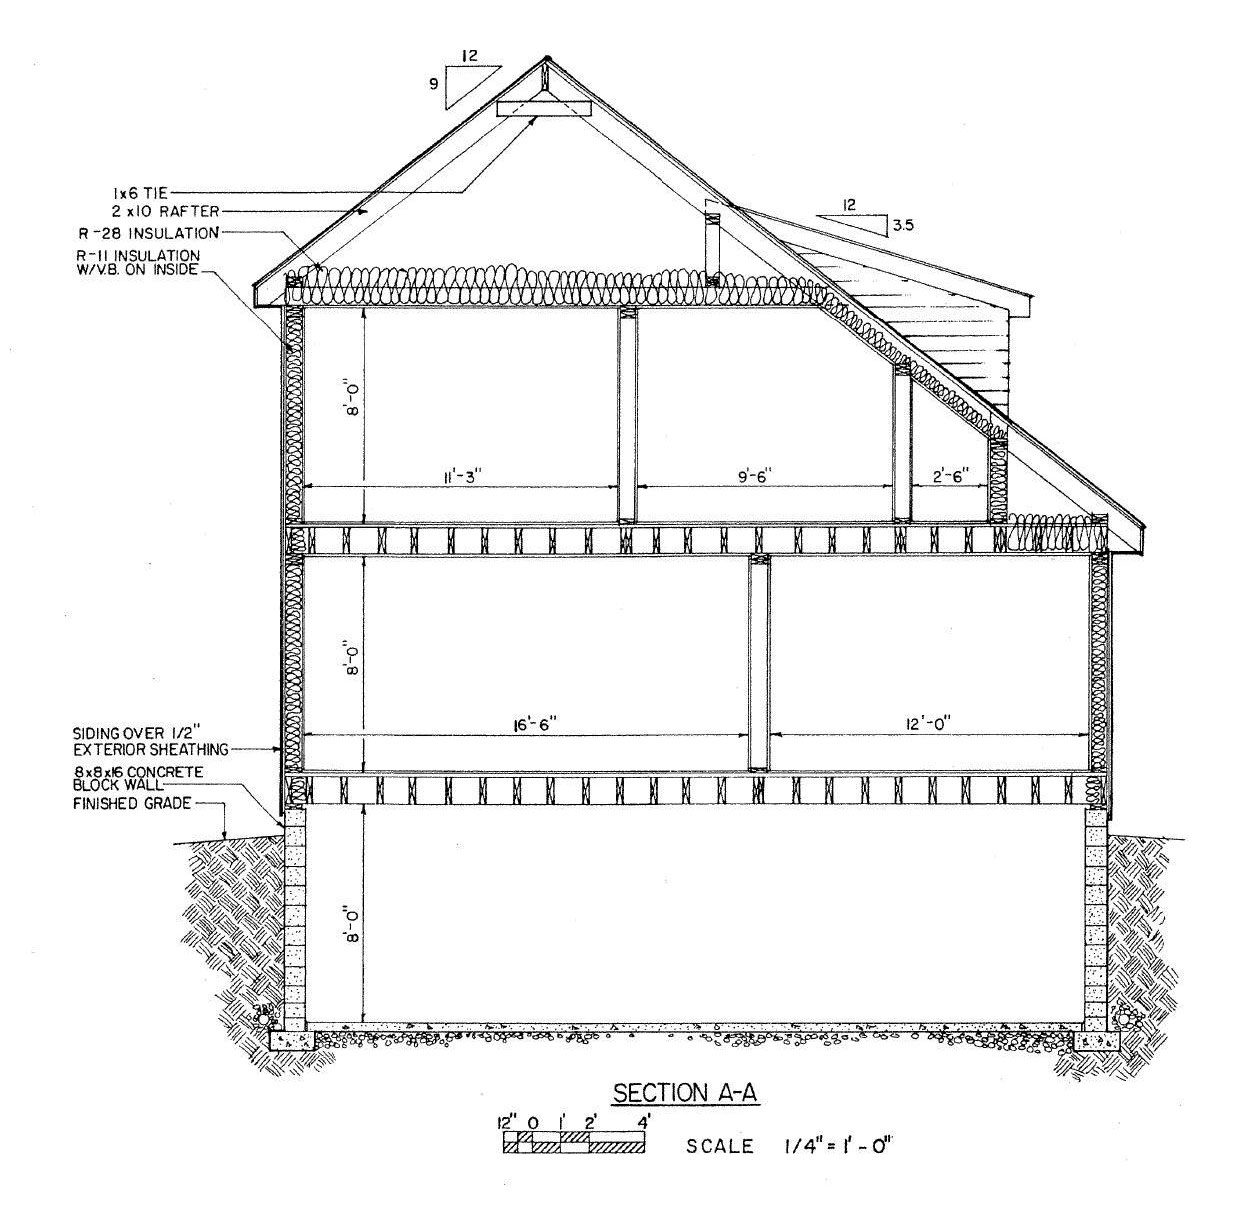 House saltbox floor plans small house floor plans salt for Small saltbox house plans